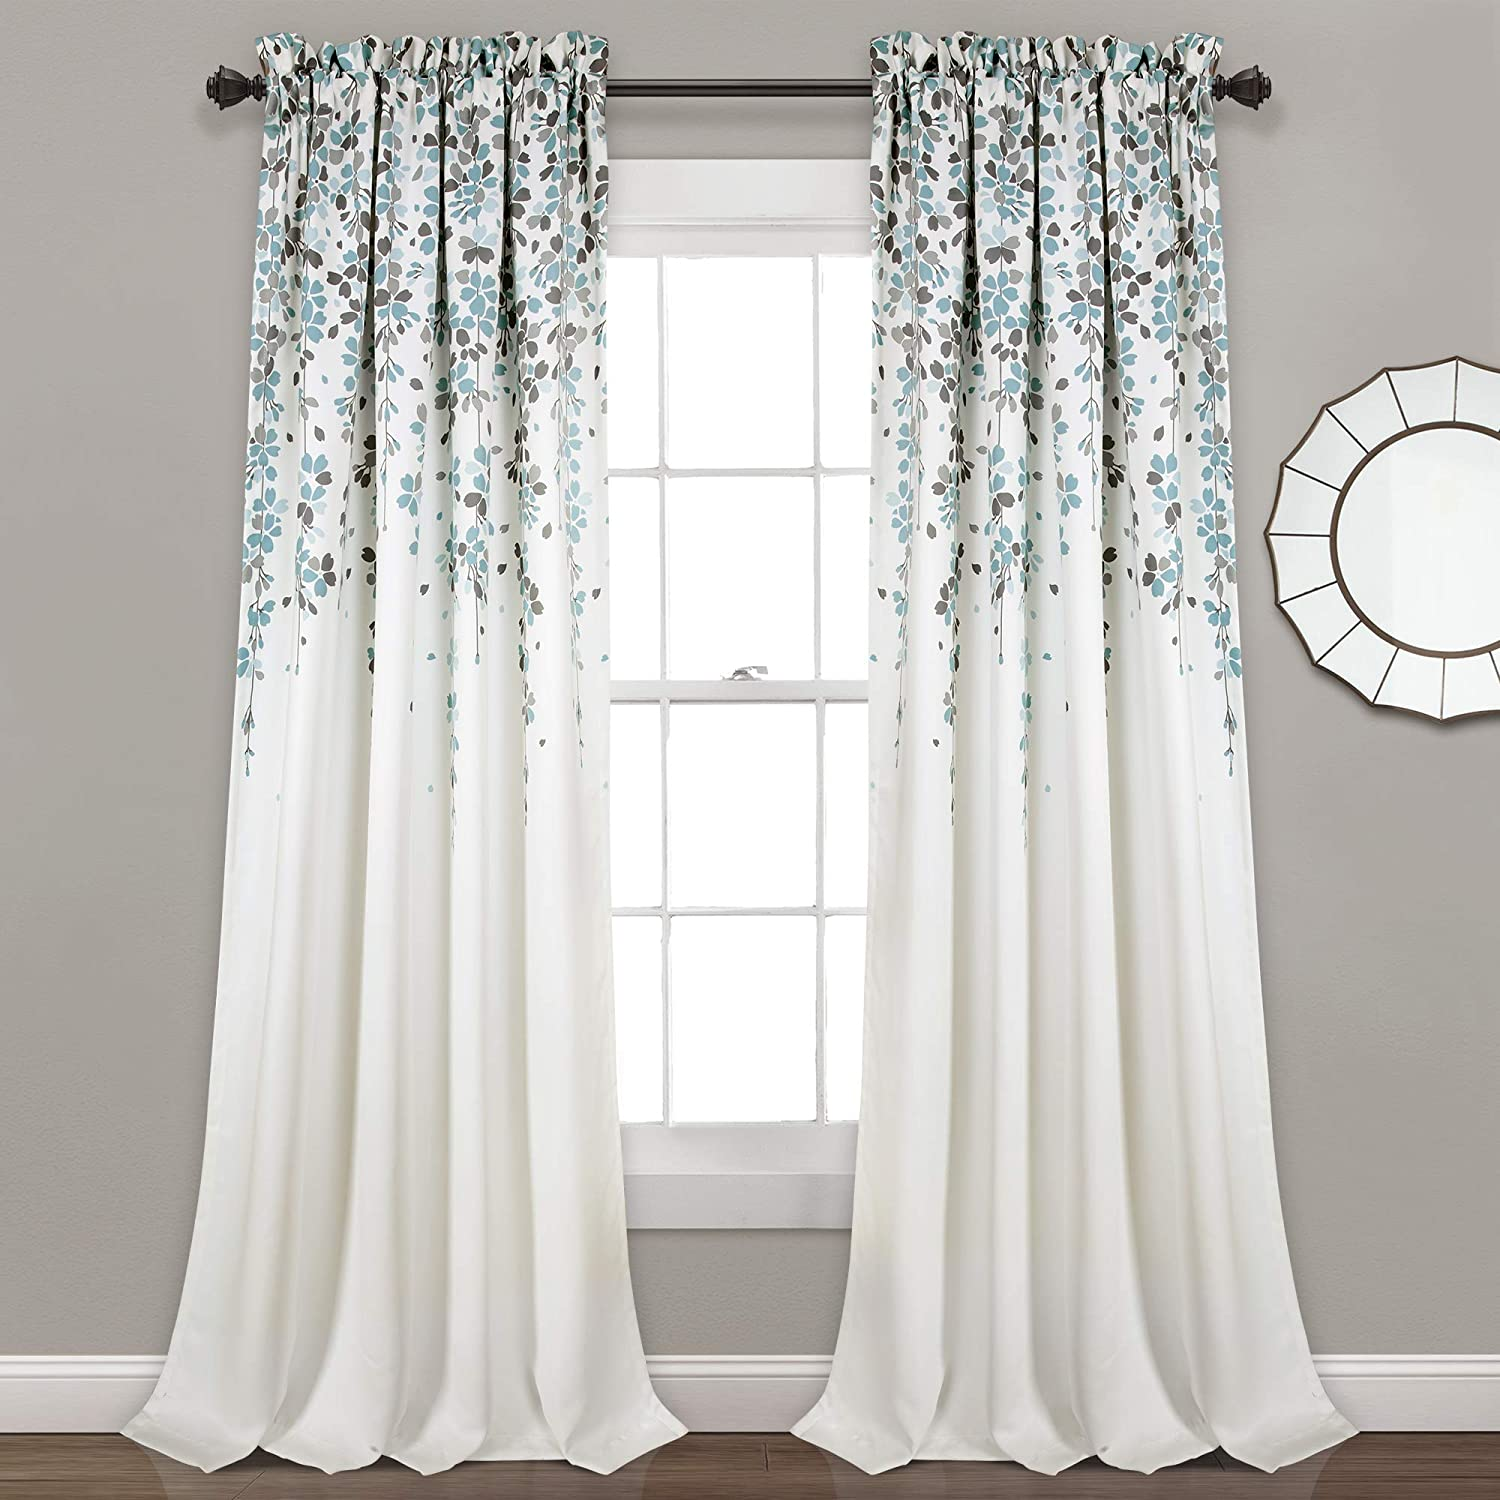 "Lush Decor, Blue and Gray Weeping Flowers Room Darkening Window Panel Curtain Set (Pair), 95"" x 52, 95"